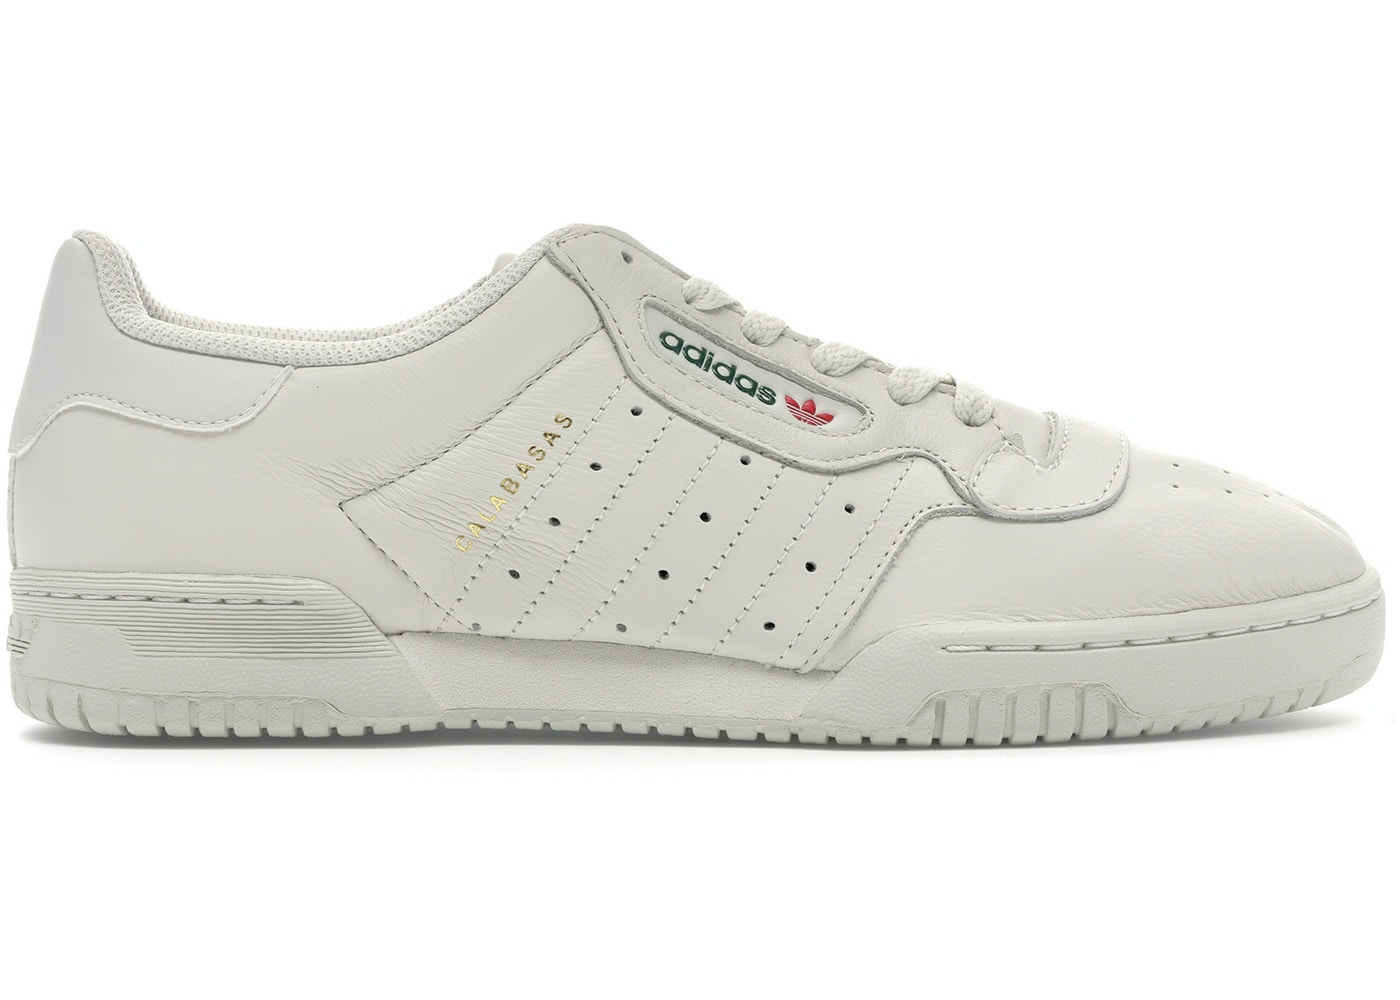 982e098db78c adidas Yeezy Powerphase Calabasas Core White